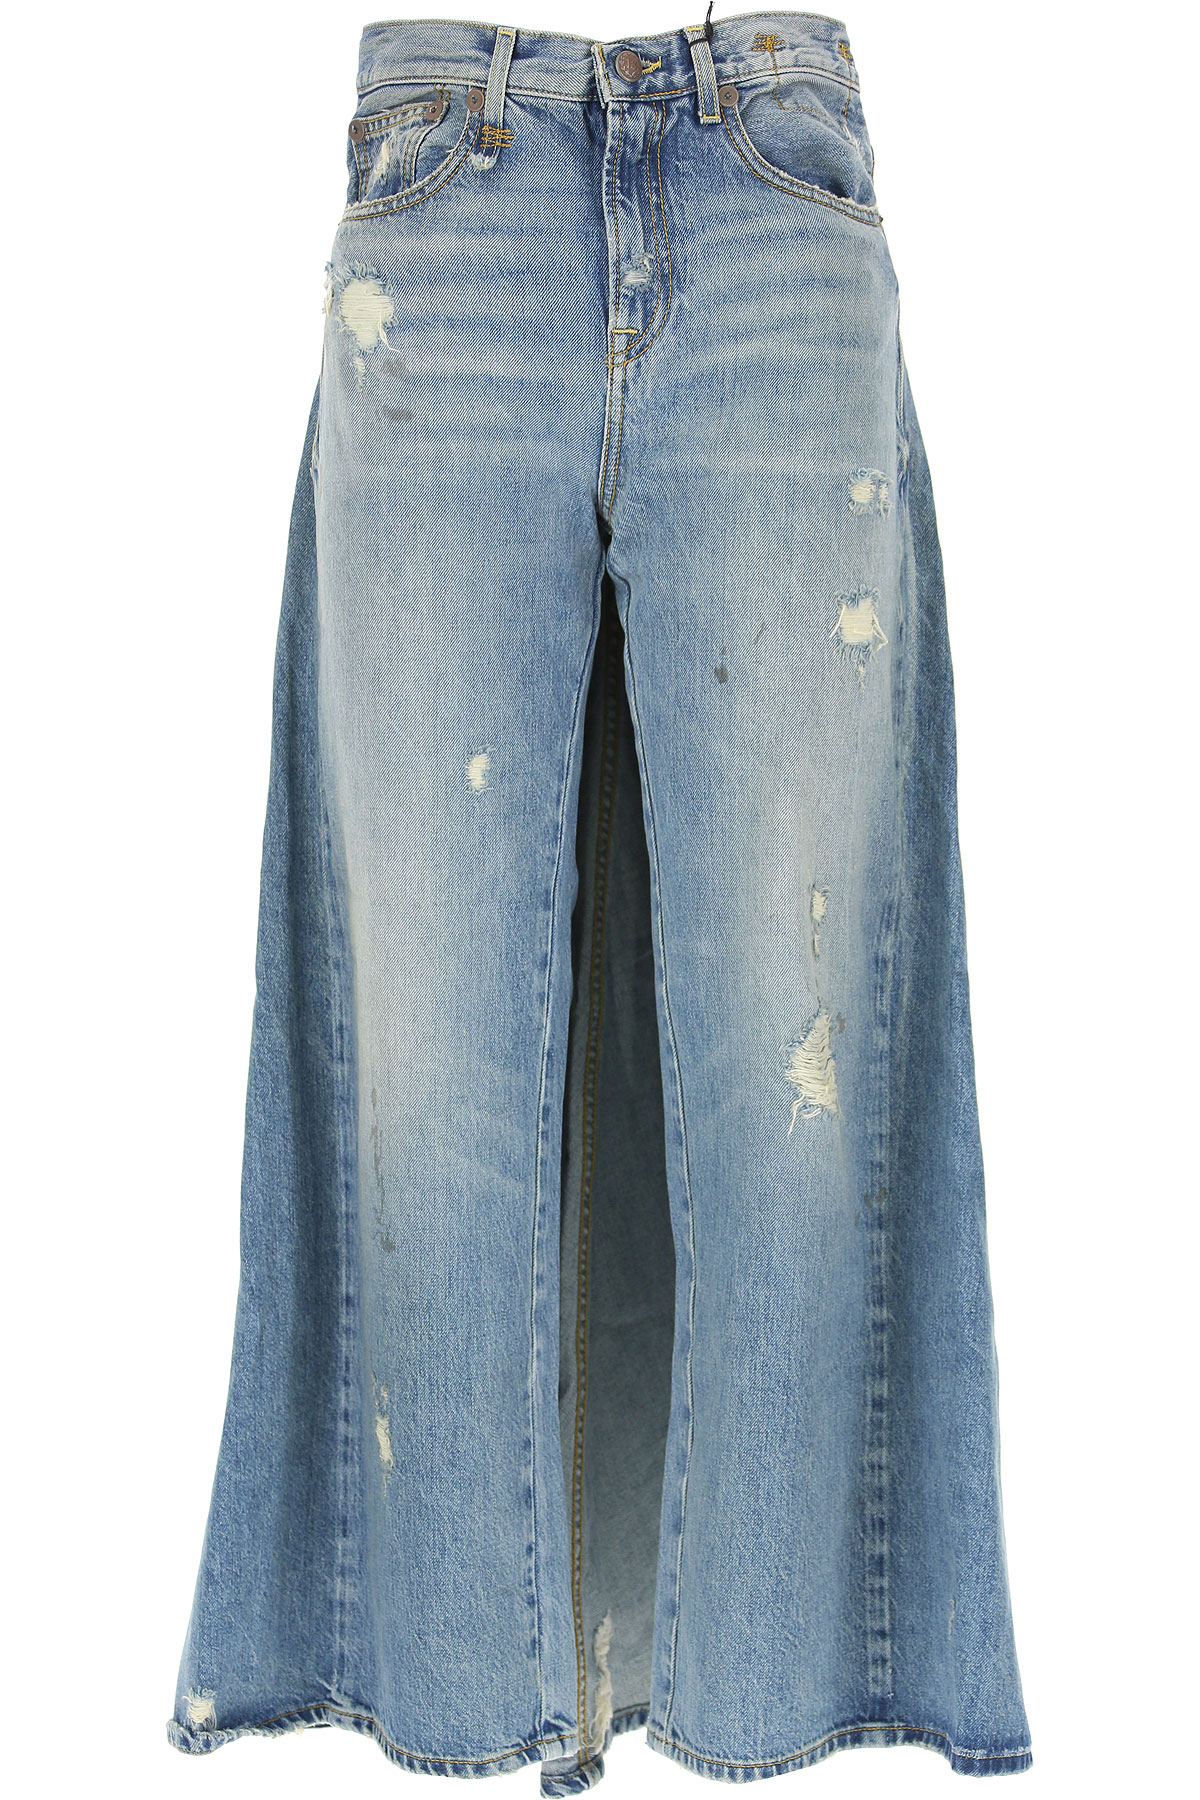 Image of R13 Jeans, Denim Light Blue, Cotton, 2017, 26 27 28